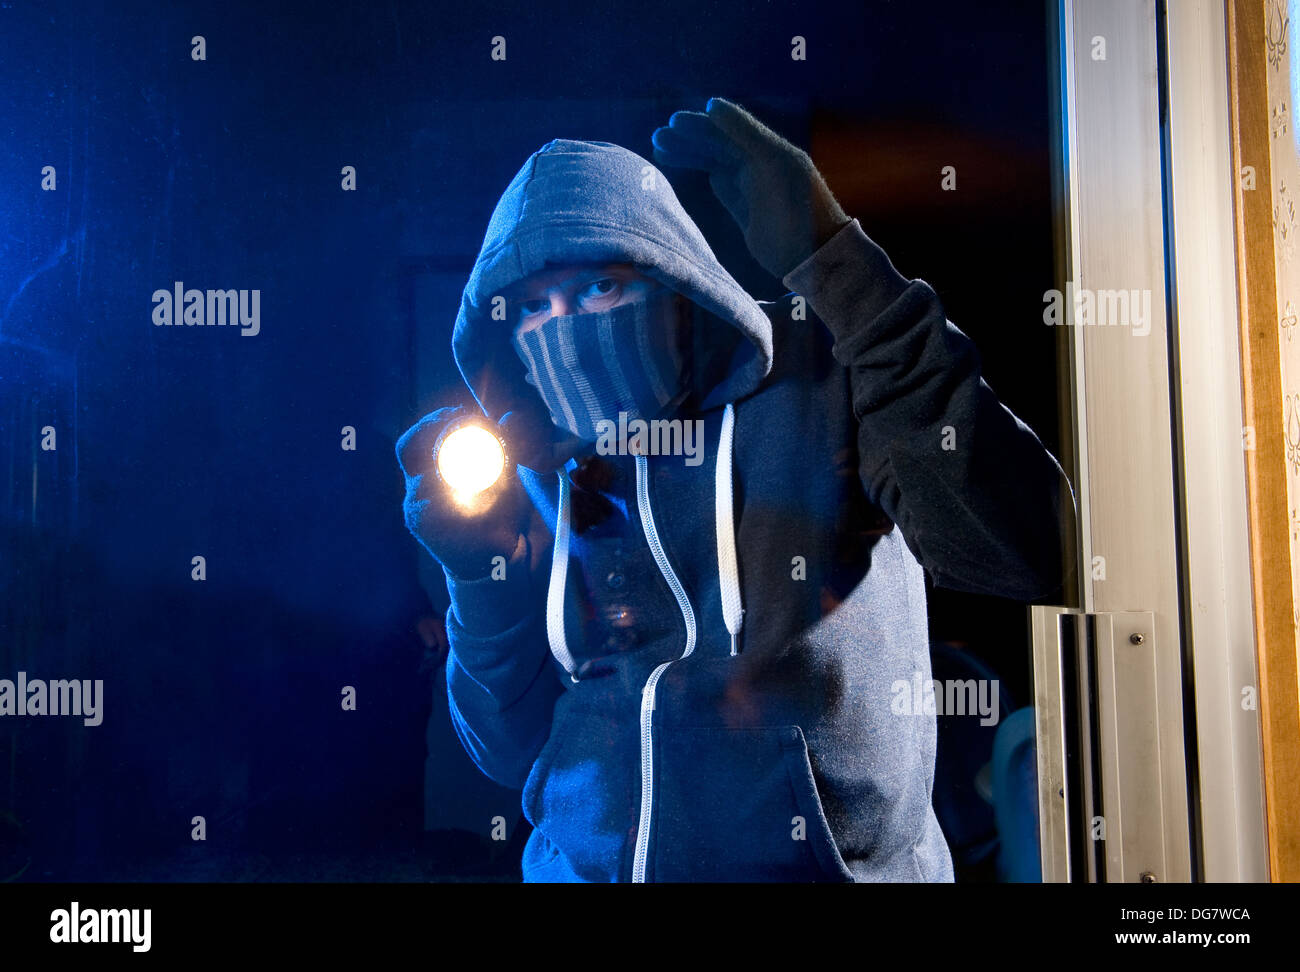 A burglar is looking through the window of a house - Stock Image